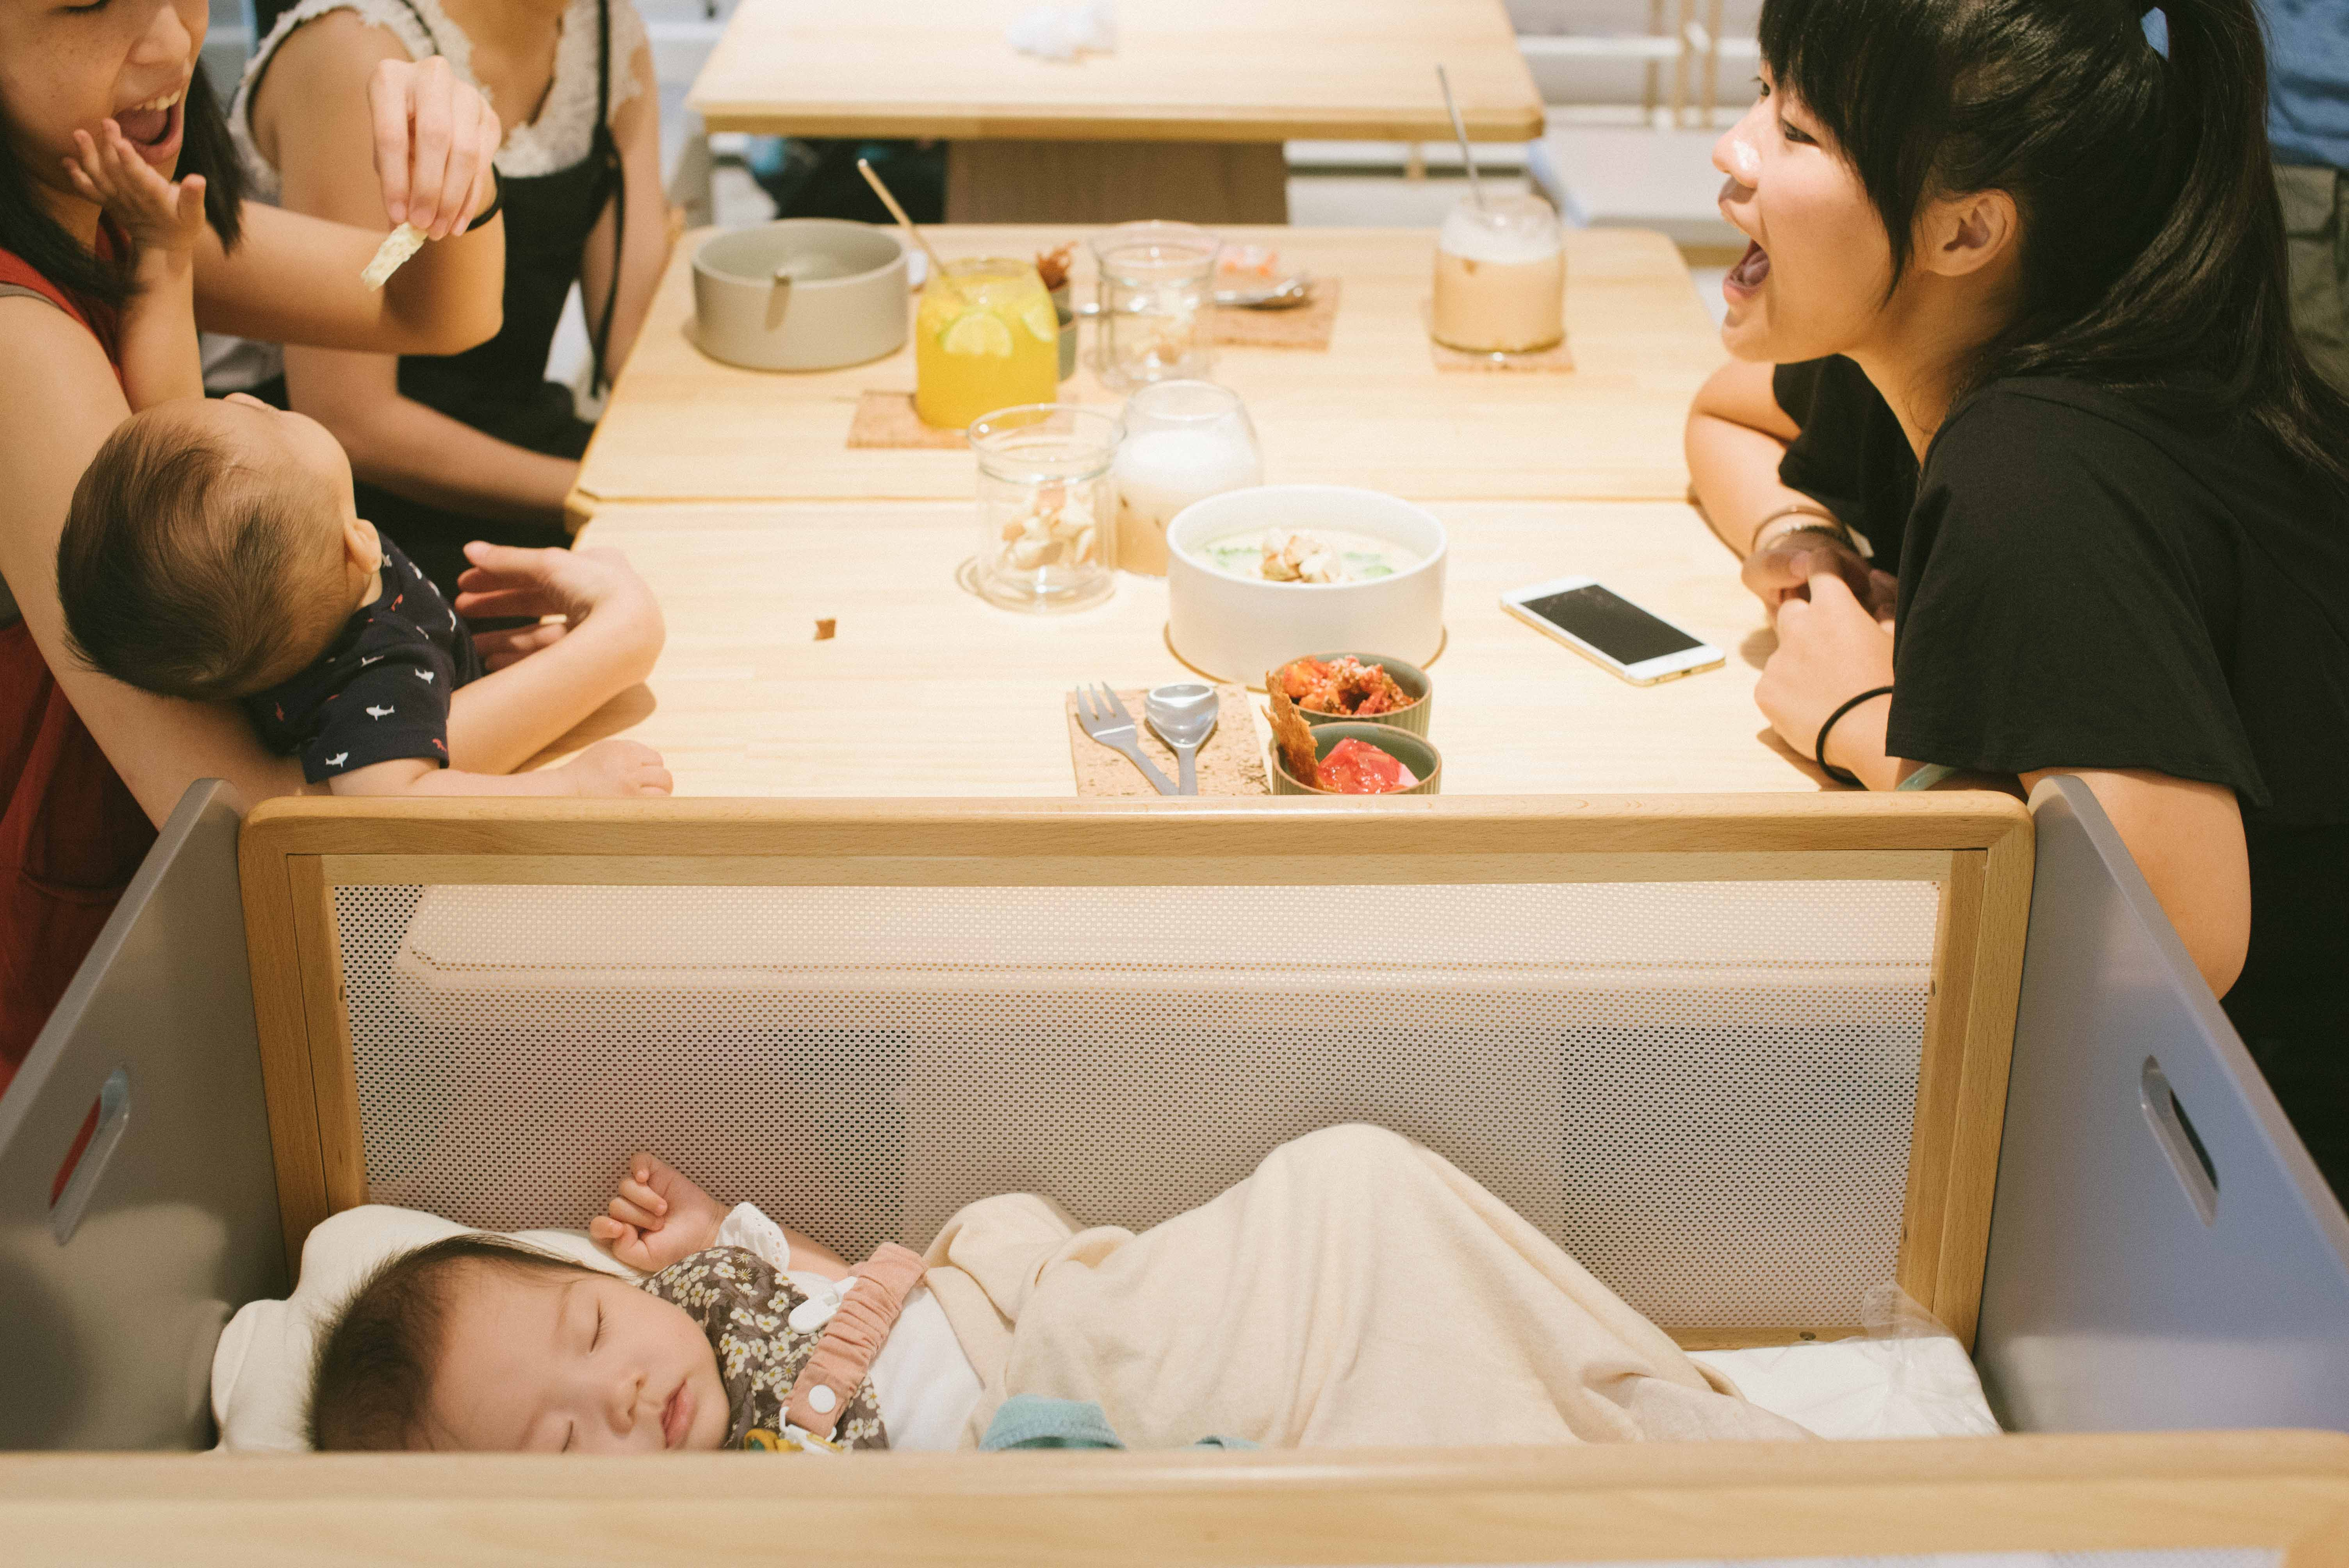 台北親子餐廳-NICE TO MEET U newborn & café